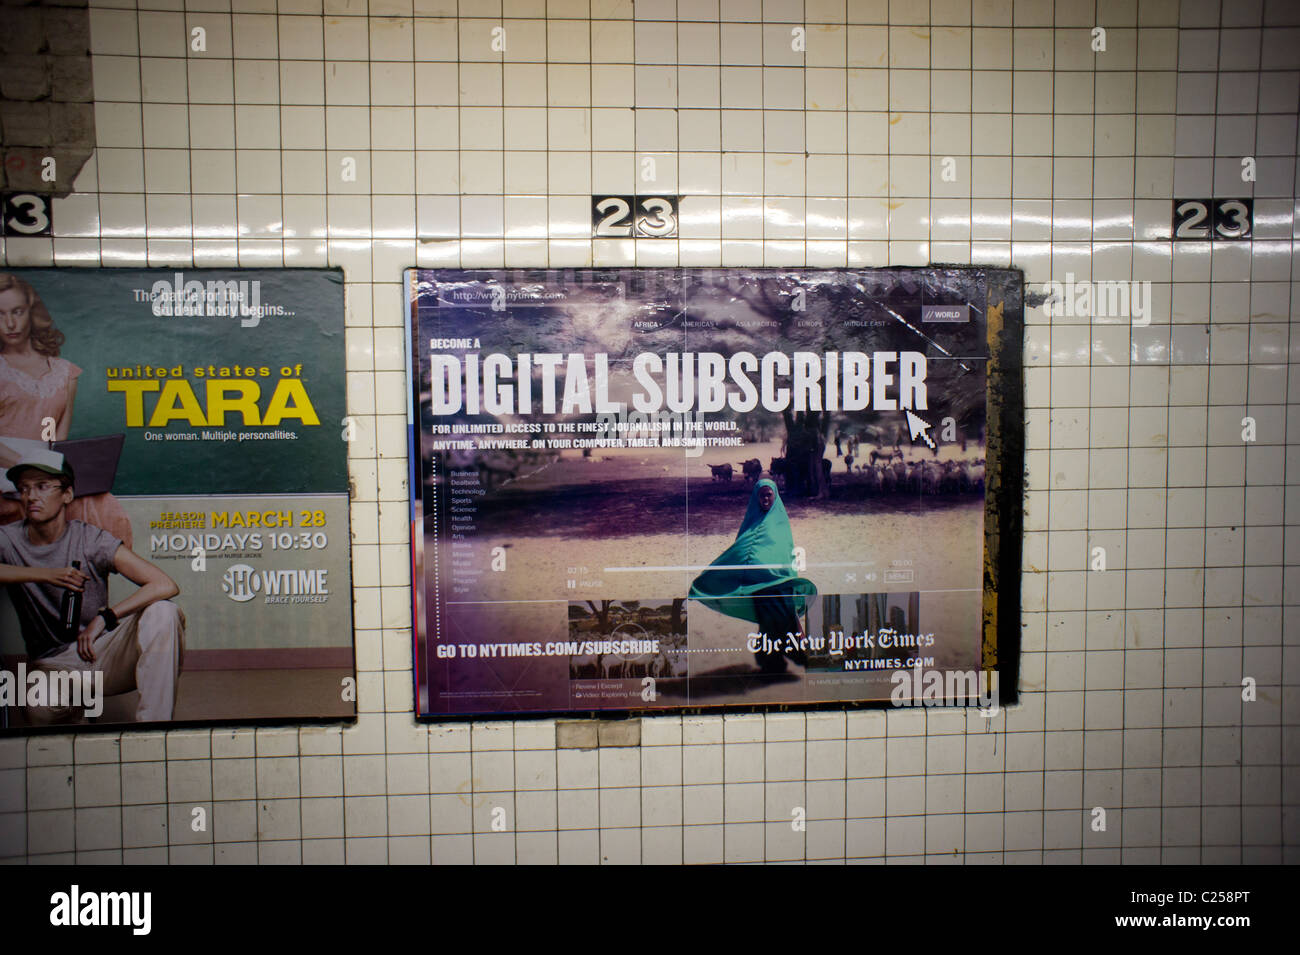 Advertising for the new subscription service of the New York Times digital is seen in the New York subway - Stock Image